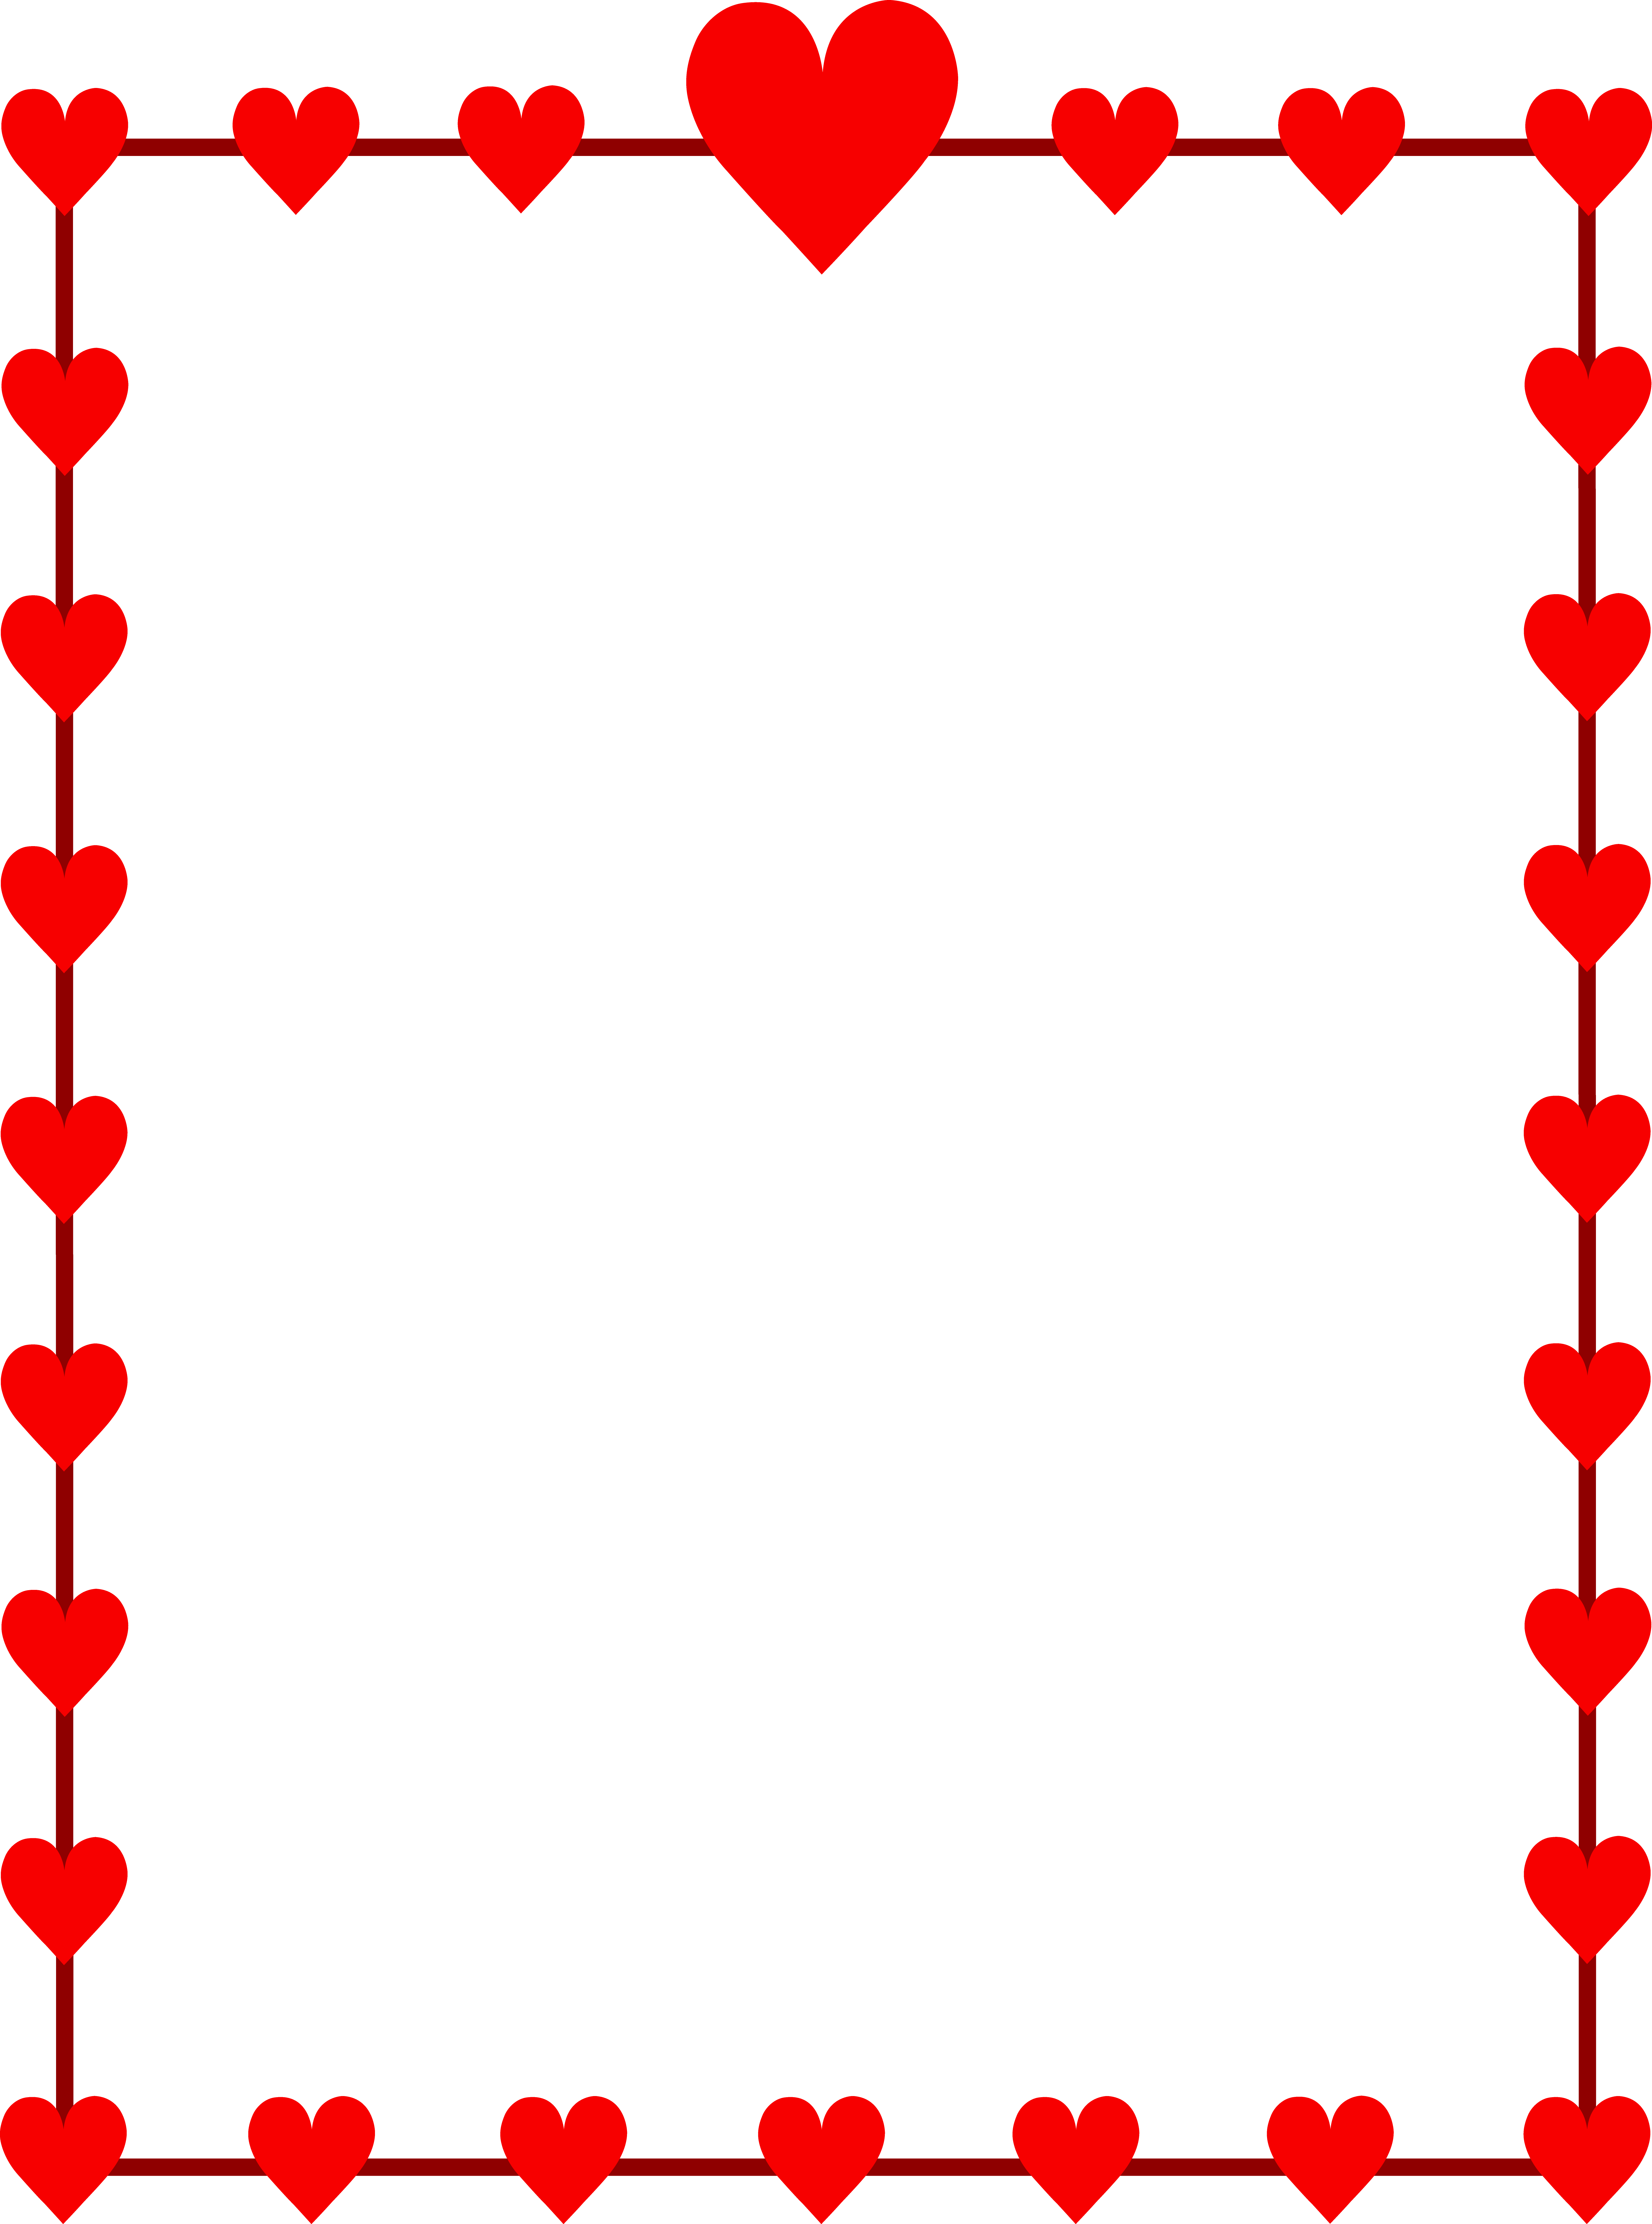 clip freeuse Red hearts border frame. Free holiday clipart borders